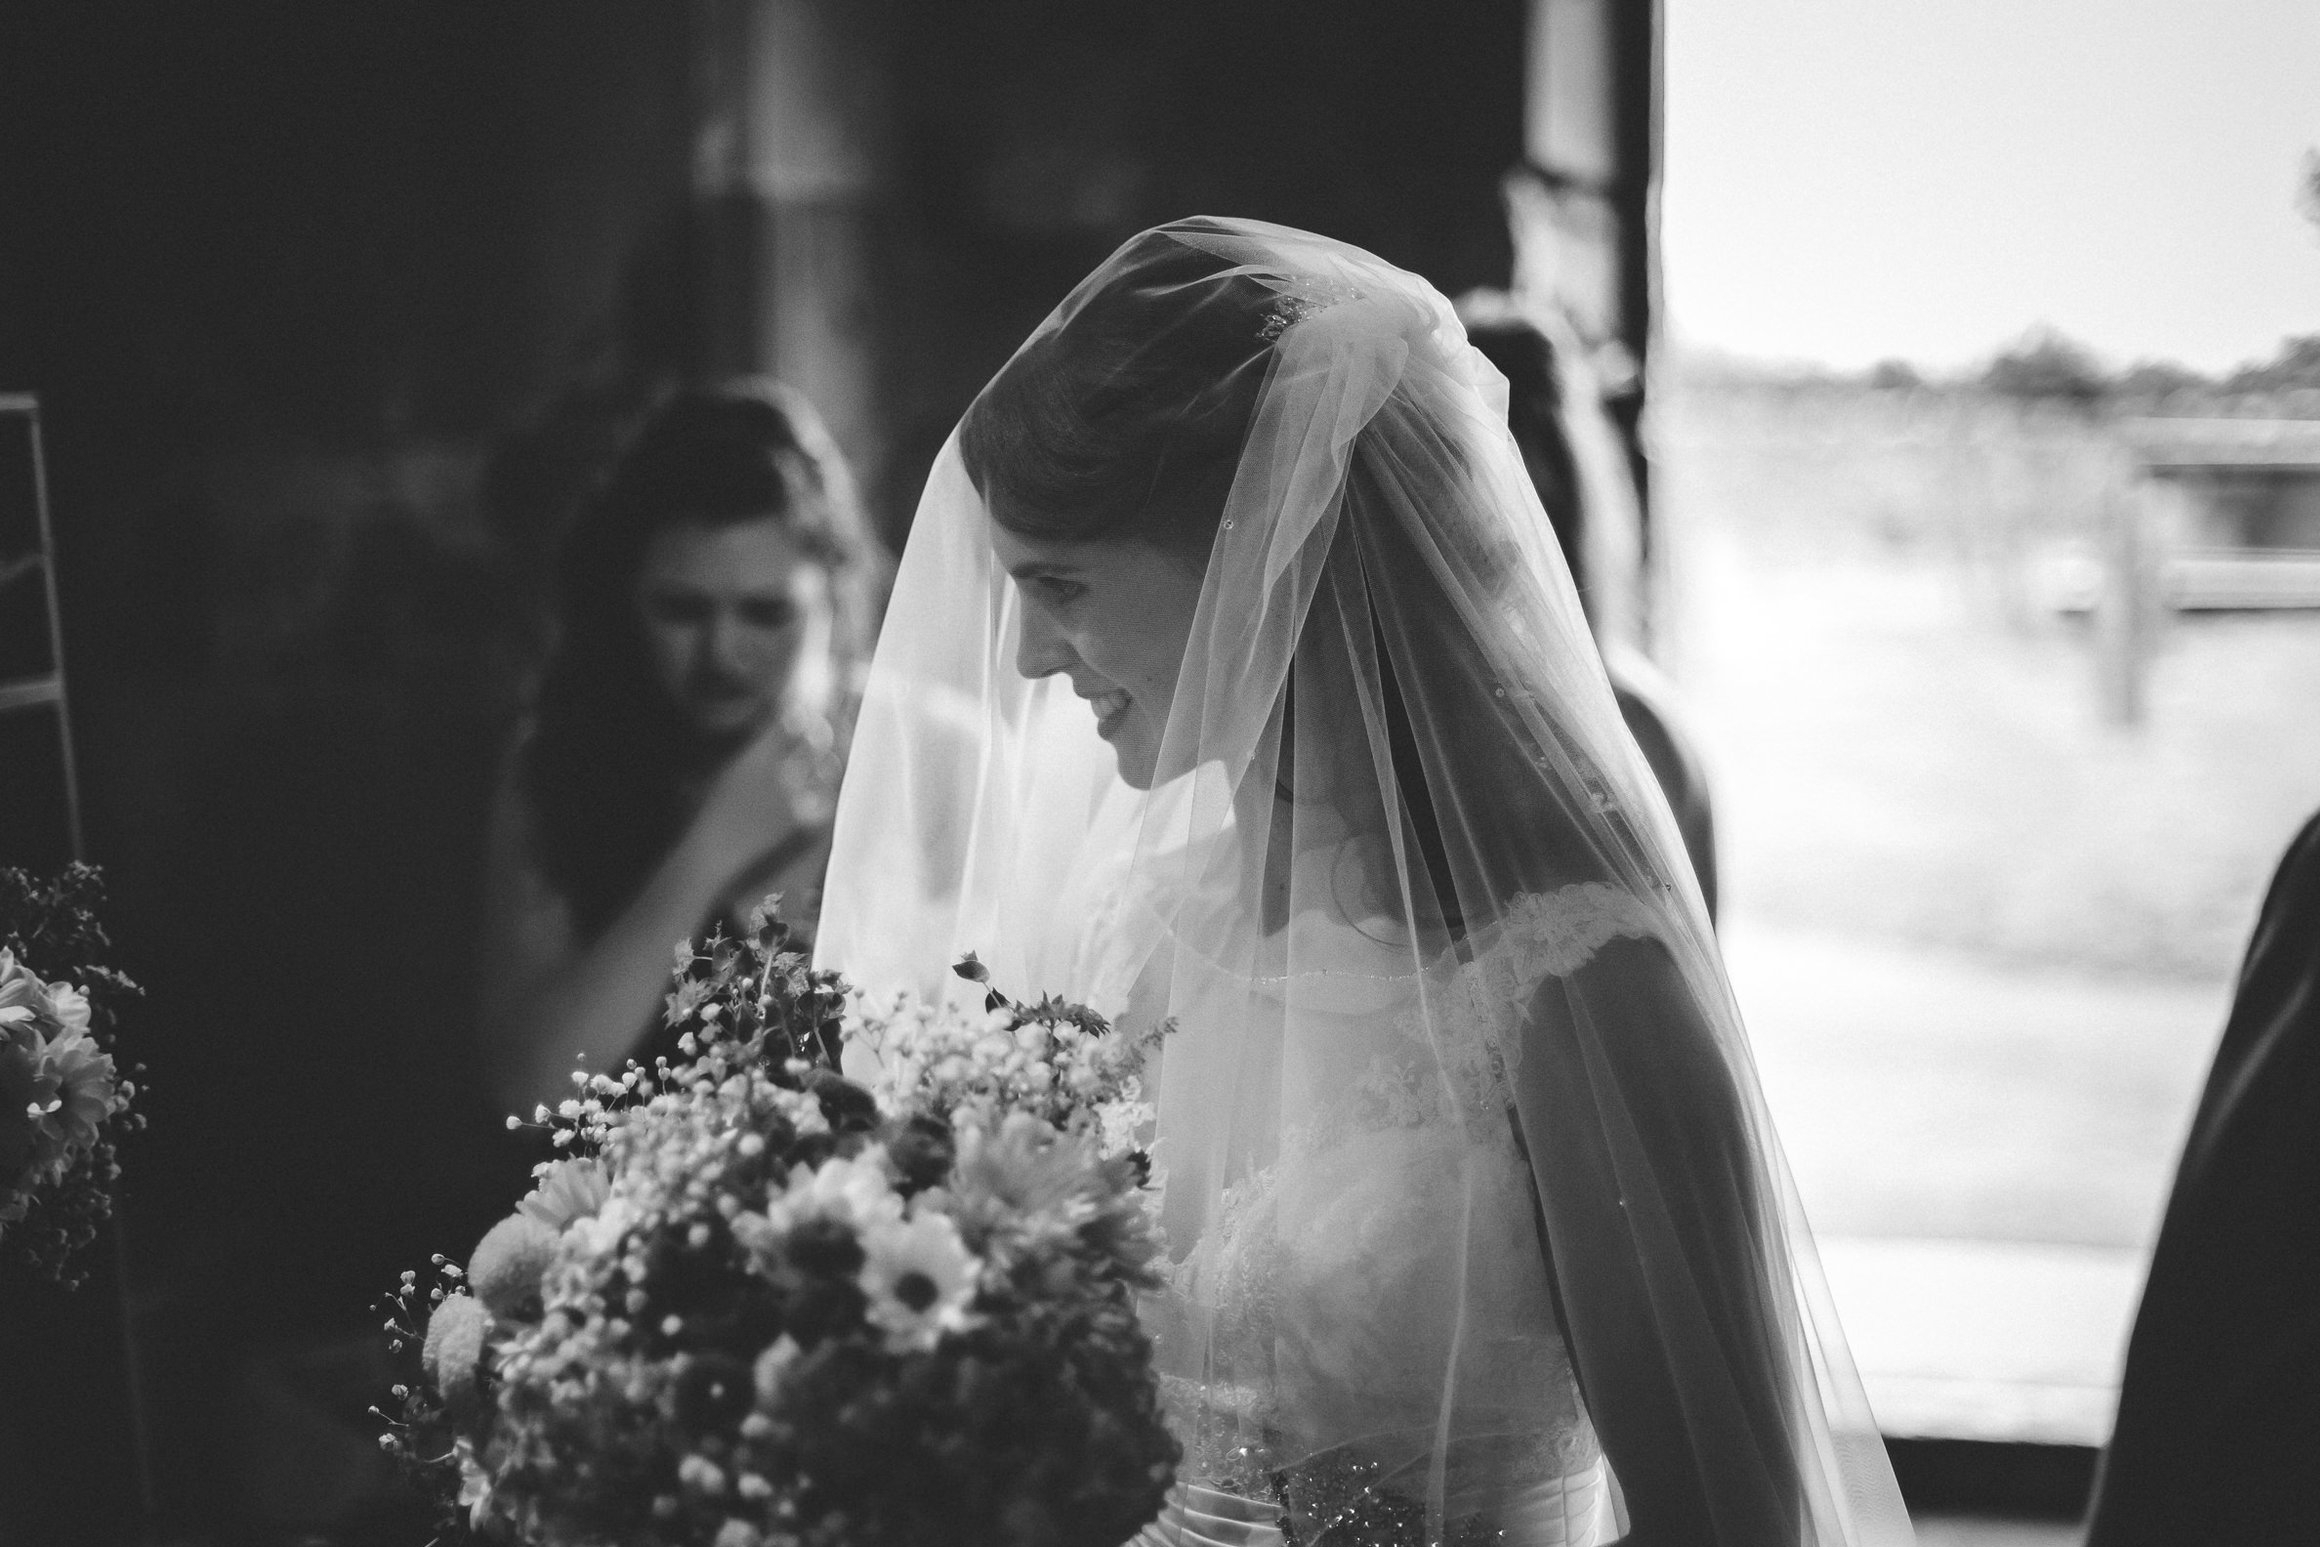 ceremony-2016-natural-relaxed-fun-documentary-wedding-photography-photographer-Derby-Nottingham-Derbyshire-Nottinghamshire-Leicestershire-Lincolnshire-East-Midlands-3.jpg